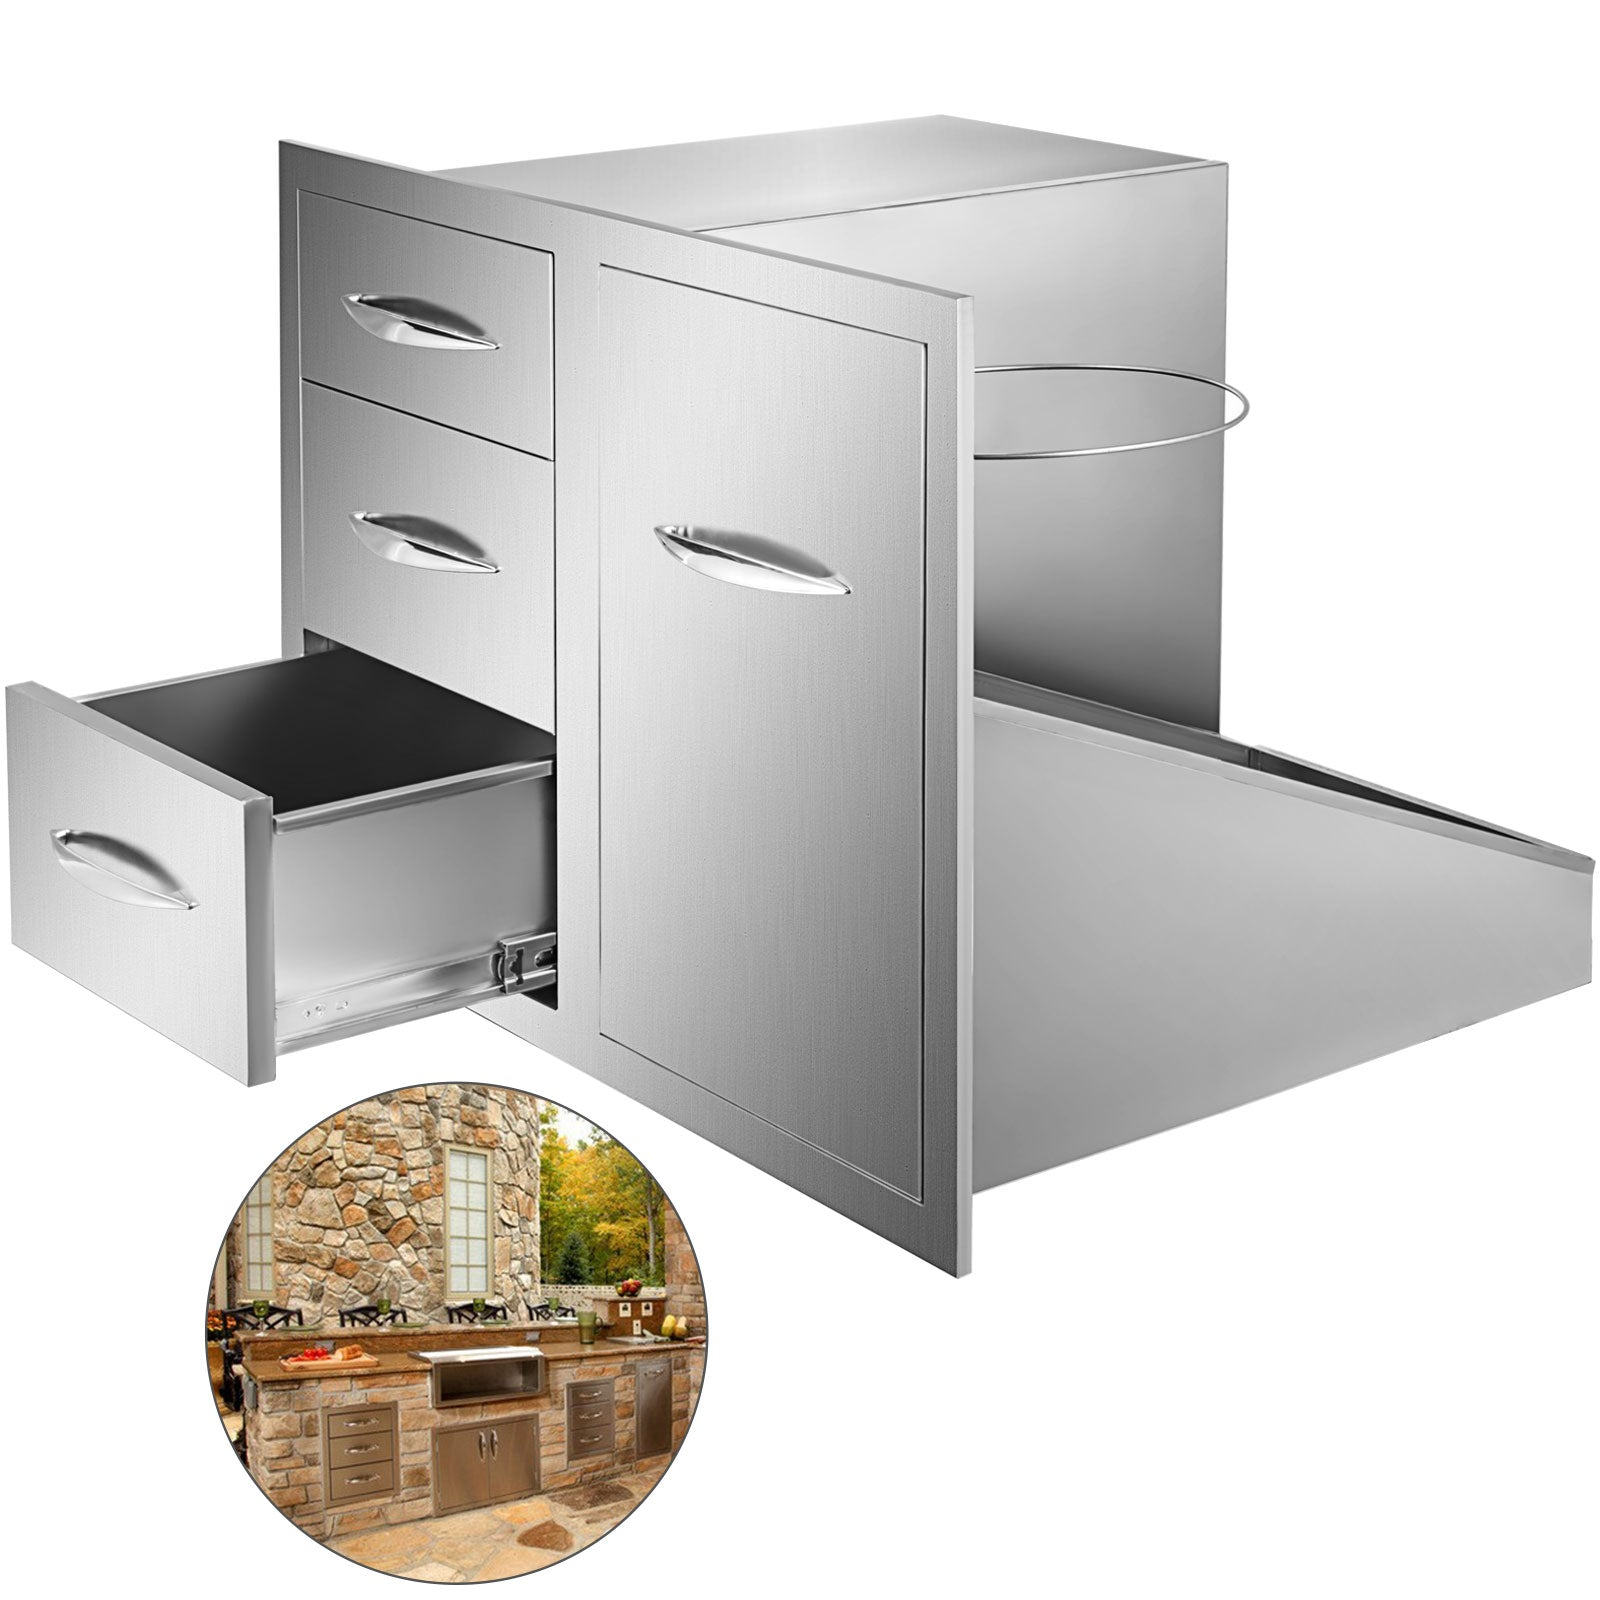 Kitchen Bbq Door & Triple Drawer Combo 75cm Bbq Island Storage W/ Trash Bag Ring